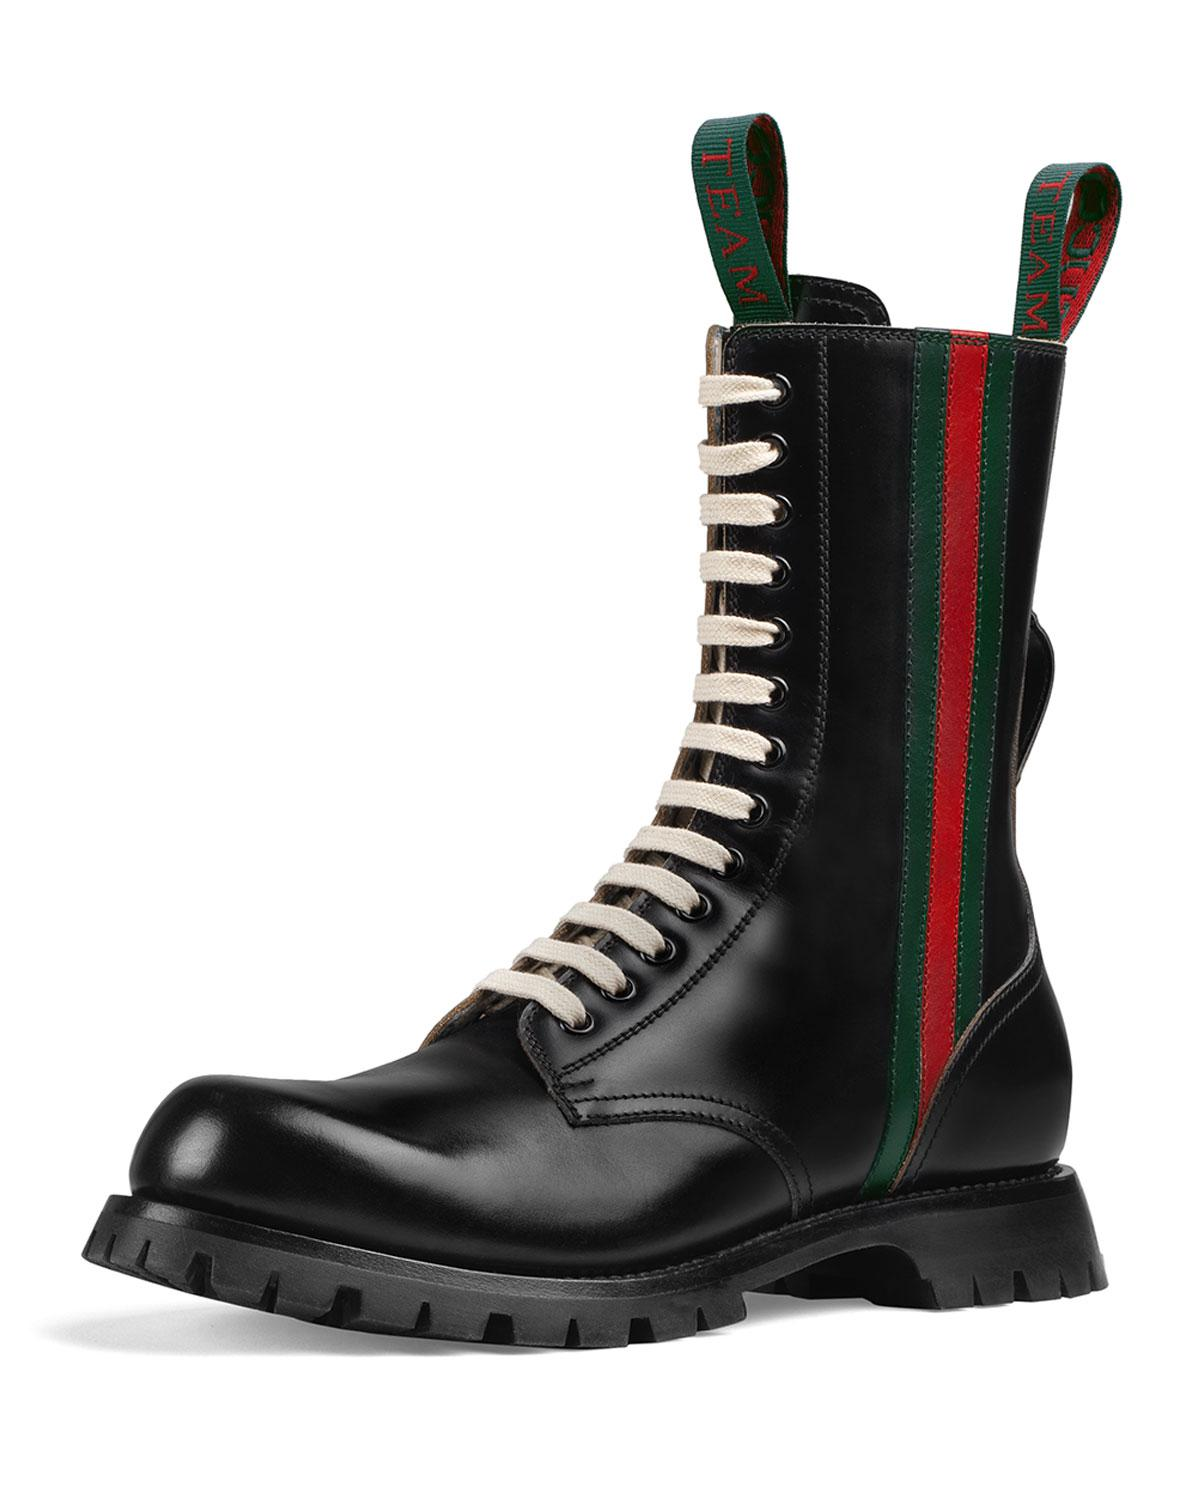 a2ce82b7065 Lyst - Gucci Leather Arley Web Boots in Black for Men